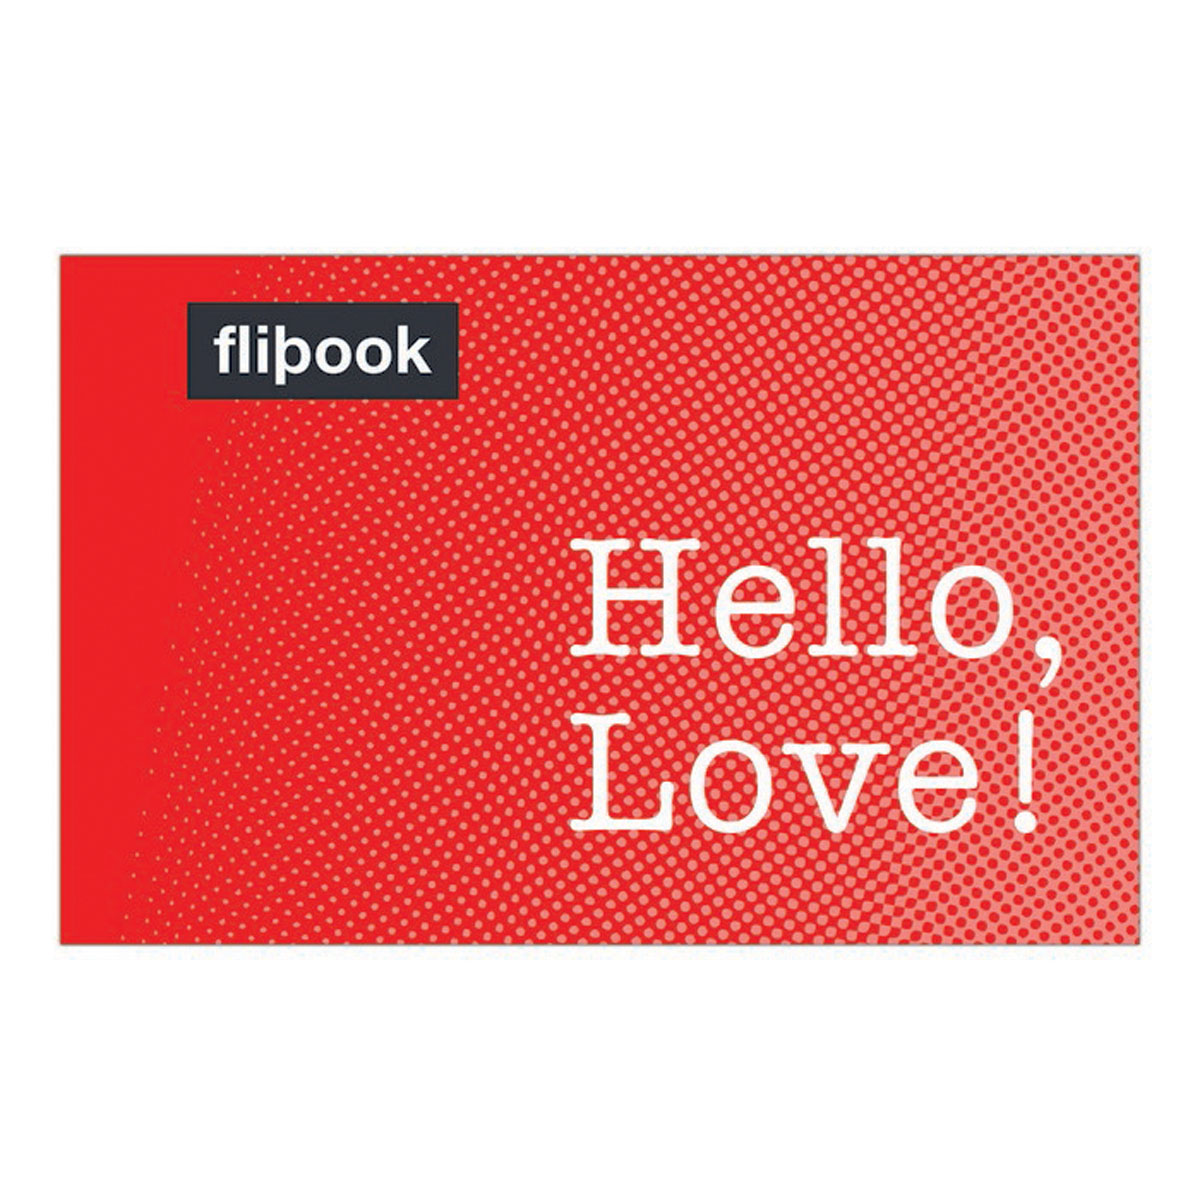 Knock Knock Hello, Love! Flipbook i take you uab cd